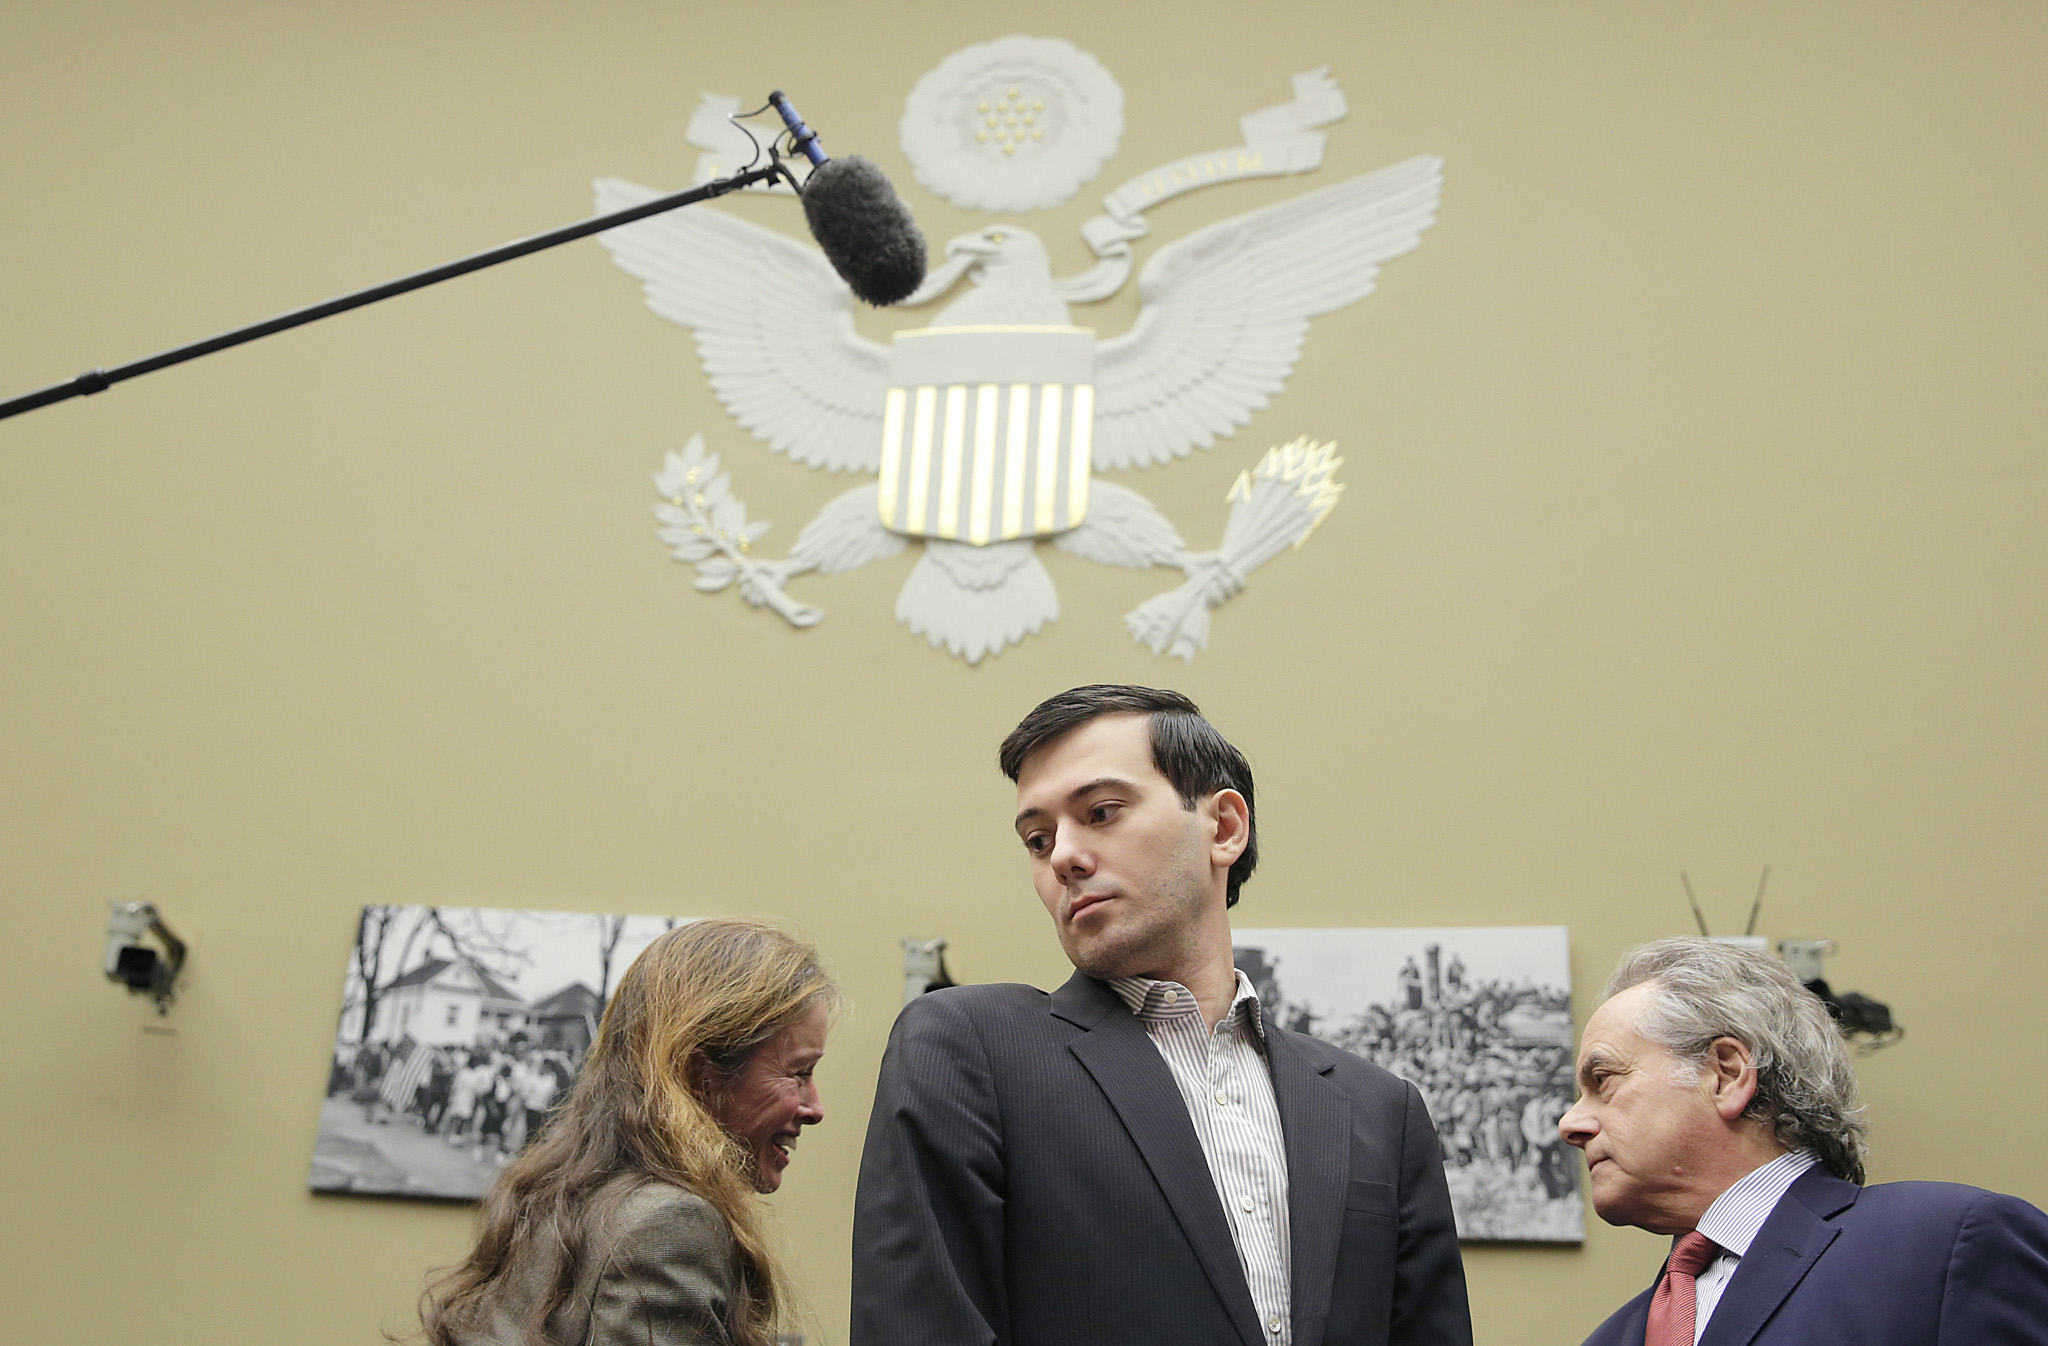 "Martin Shkreli, former CEO of Turing Pharmaceuticals LLC, arrives before a House Oversight and Government Reform hearing on ""Developments in the Prescription Drug Market Oversight"" on Capitol Hill in Washington...Martin Shkreli, (C) former CEO of Turing Pharmaceuticals LLC, arrives before a House Oversight and Government Reform hearing on ""Developments in the Prescription Drug Market Oversight"" on Capitol Hill in Washington February 4, 2016. REUTERS/Joshua Roberts      TPX IMAGES OF THE DAY"